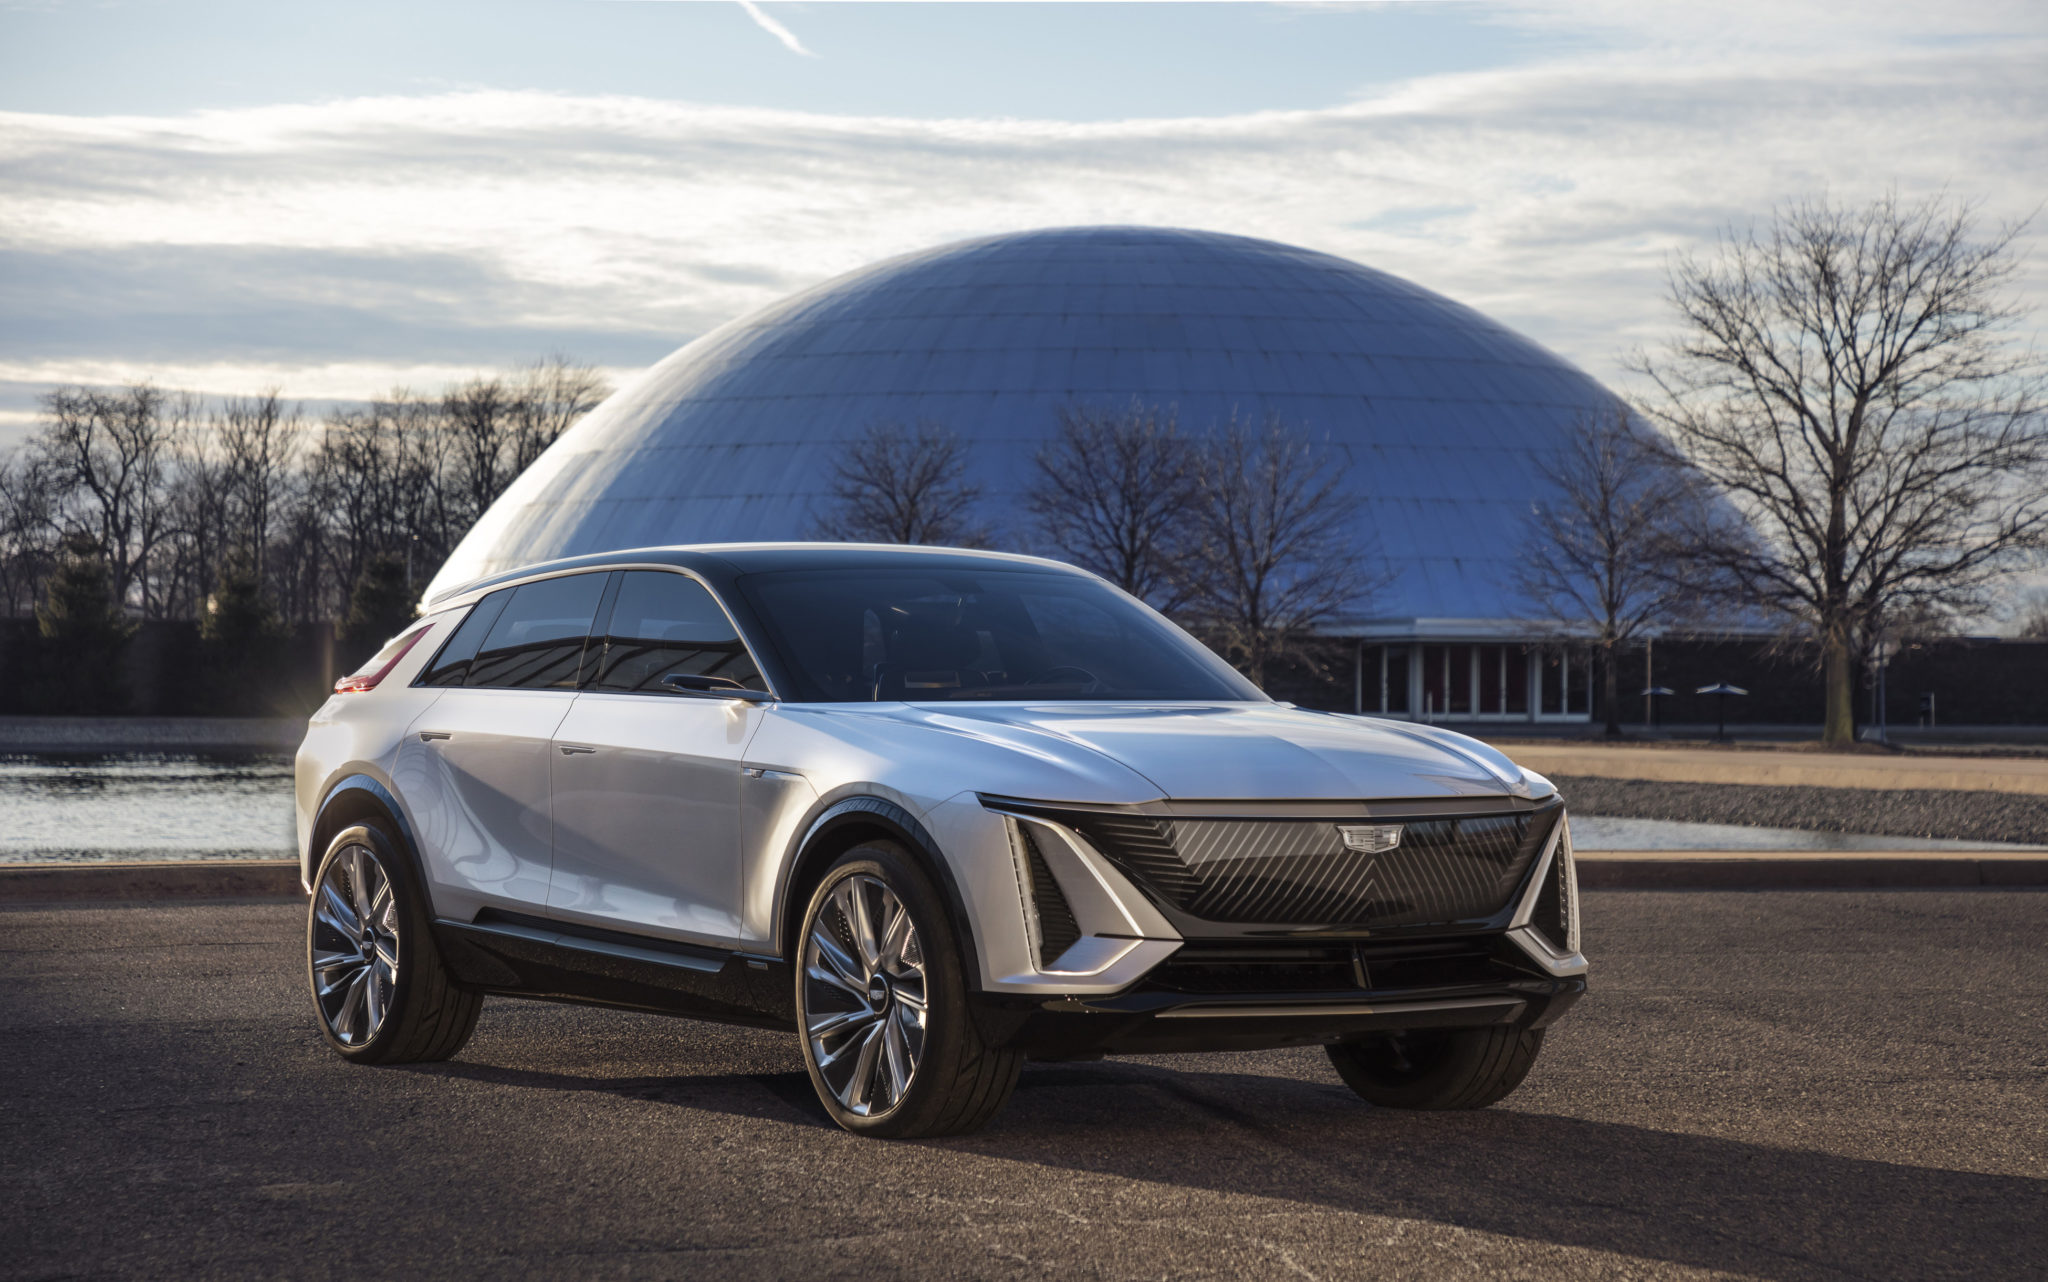 NEW CADILLAC LYRIQ POINTS TO GENERAL MOTORS' FUTURE